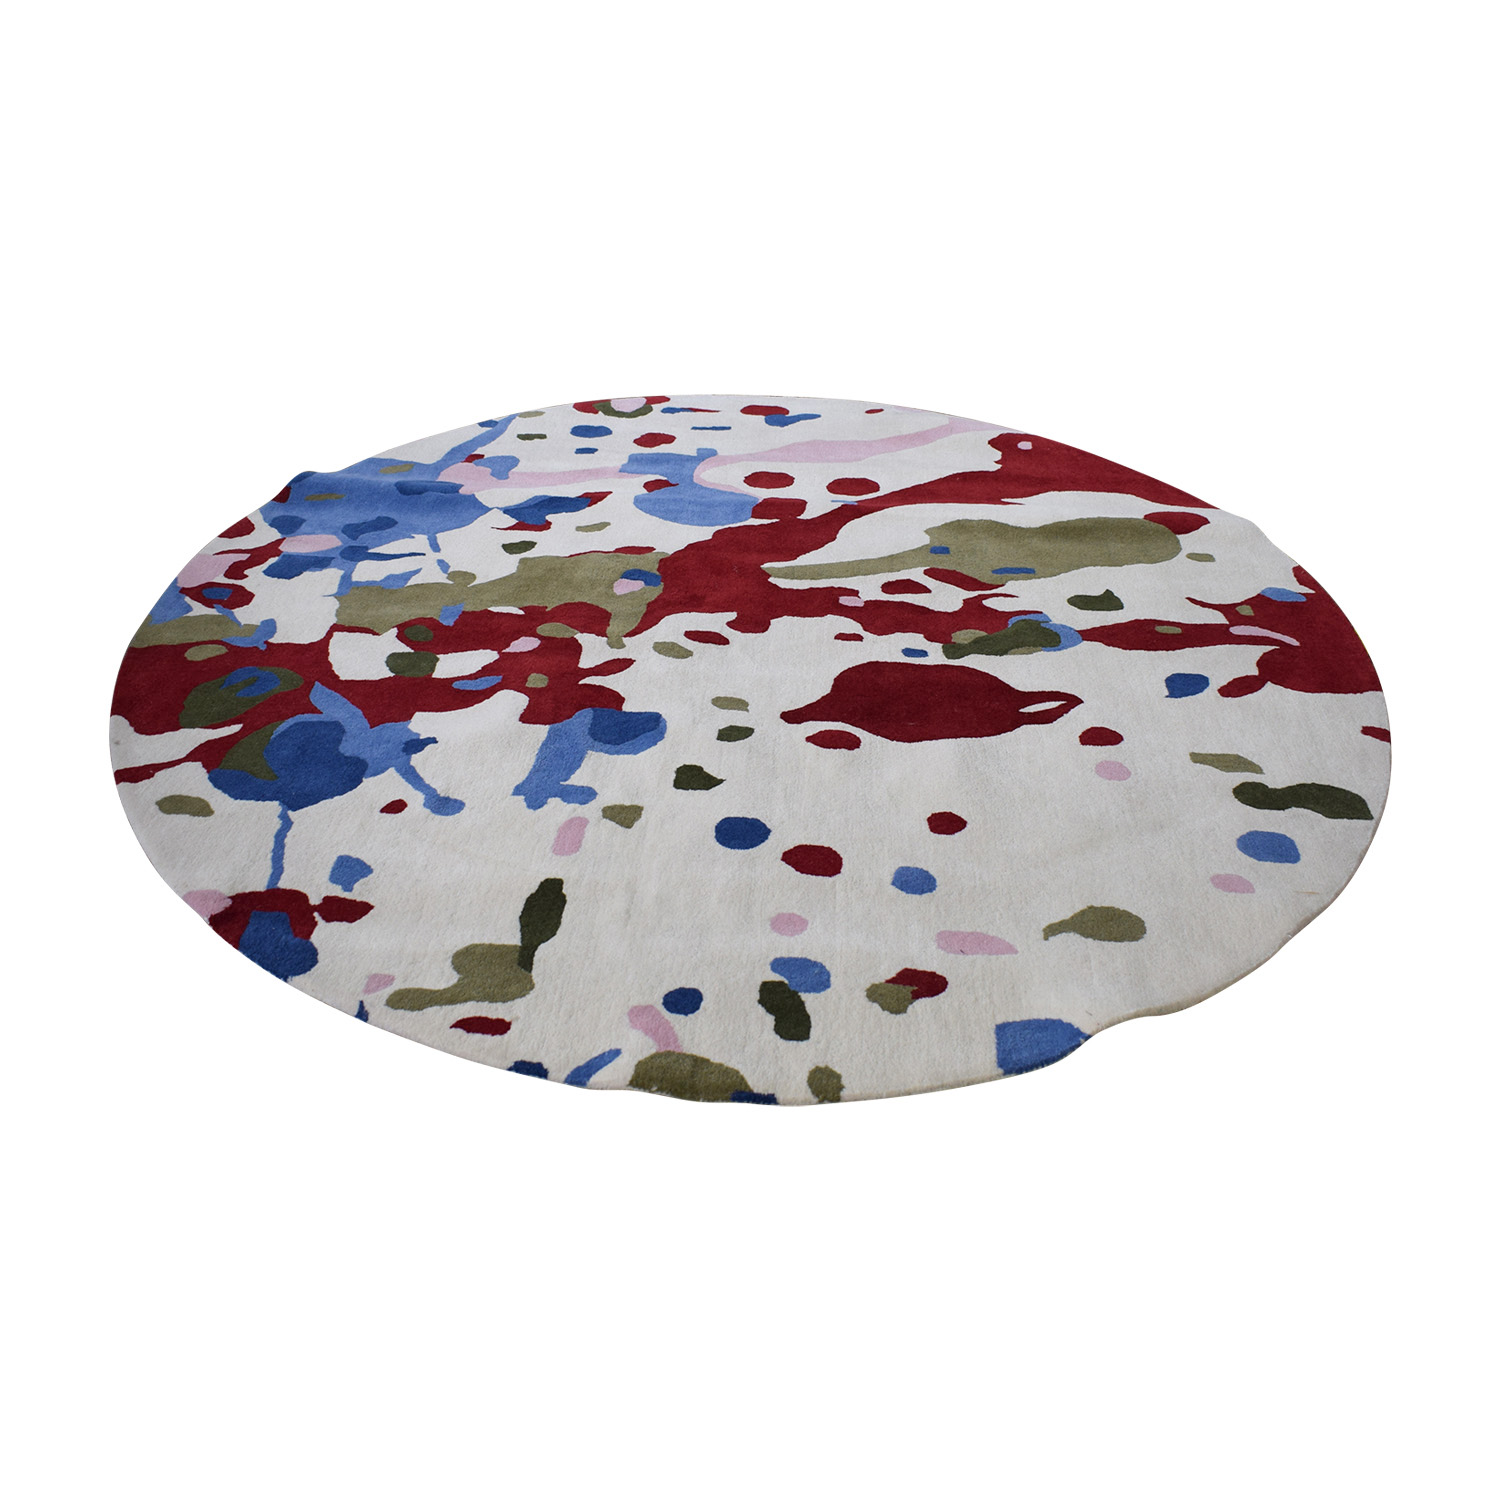 Obeetee Obeetee Round Multi-Colored Handtufted Rug discount